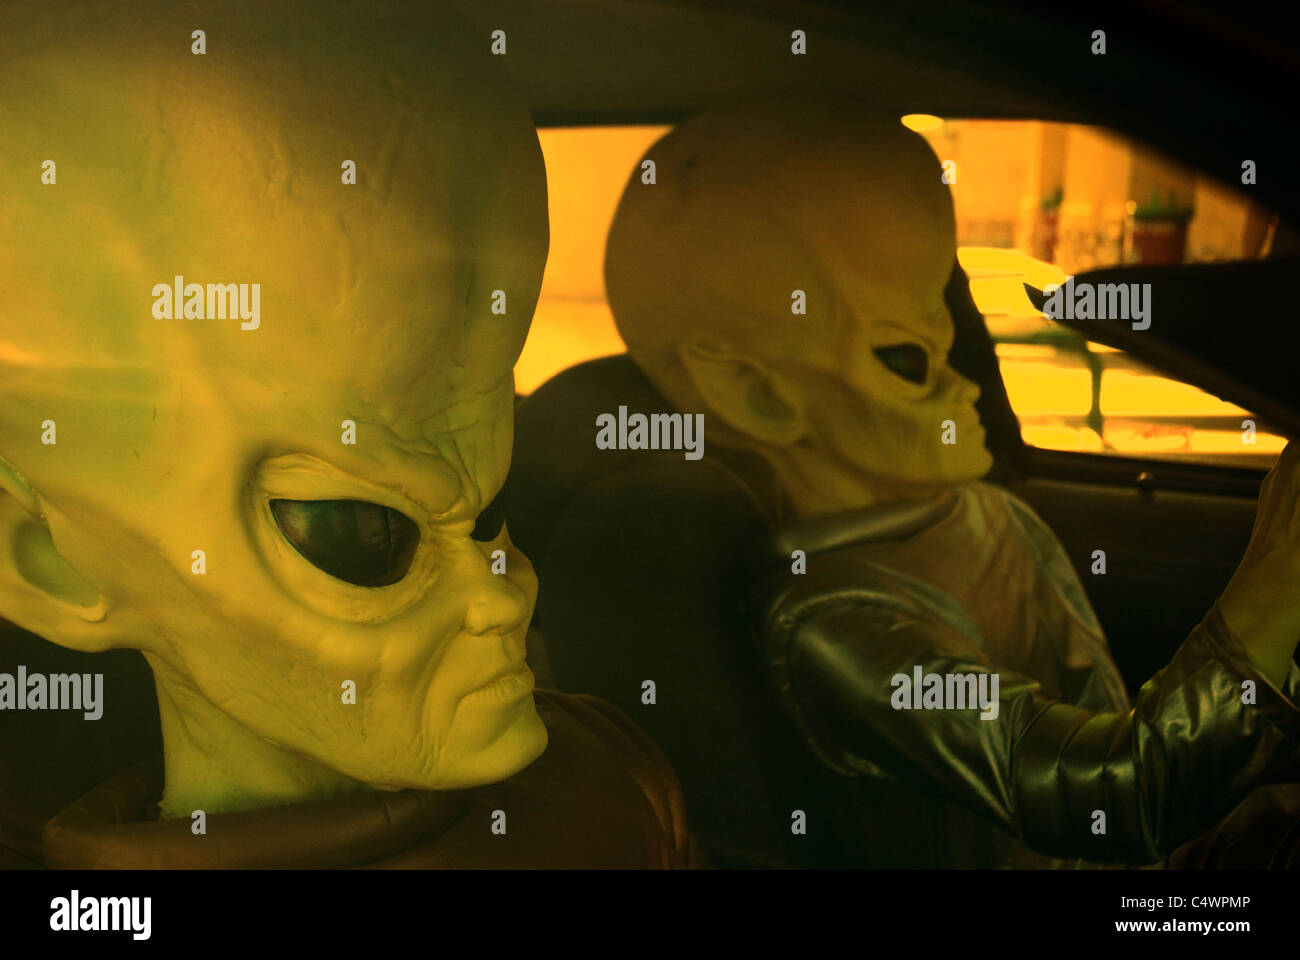 Driving aliens - Stock Image